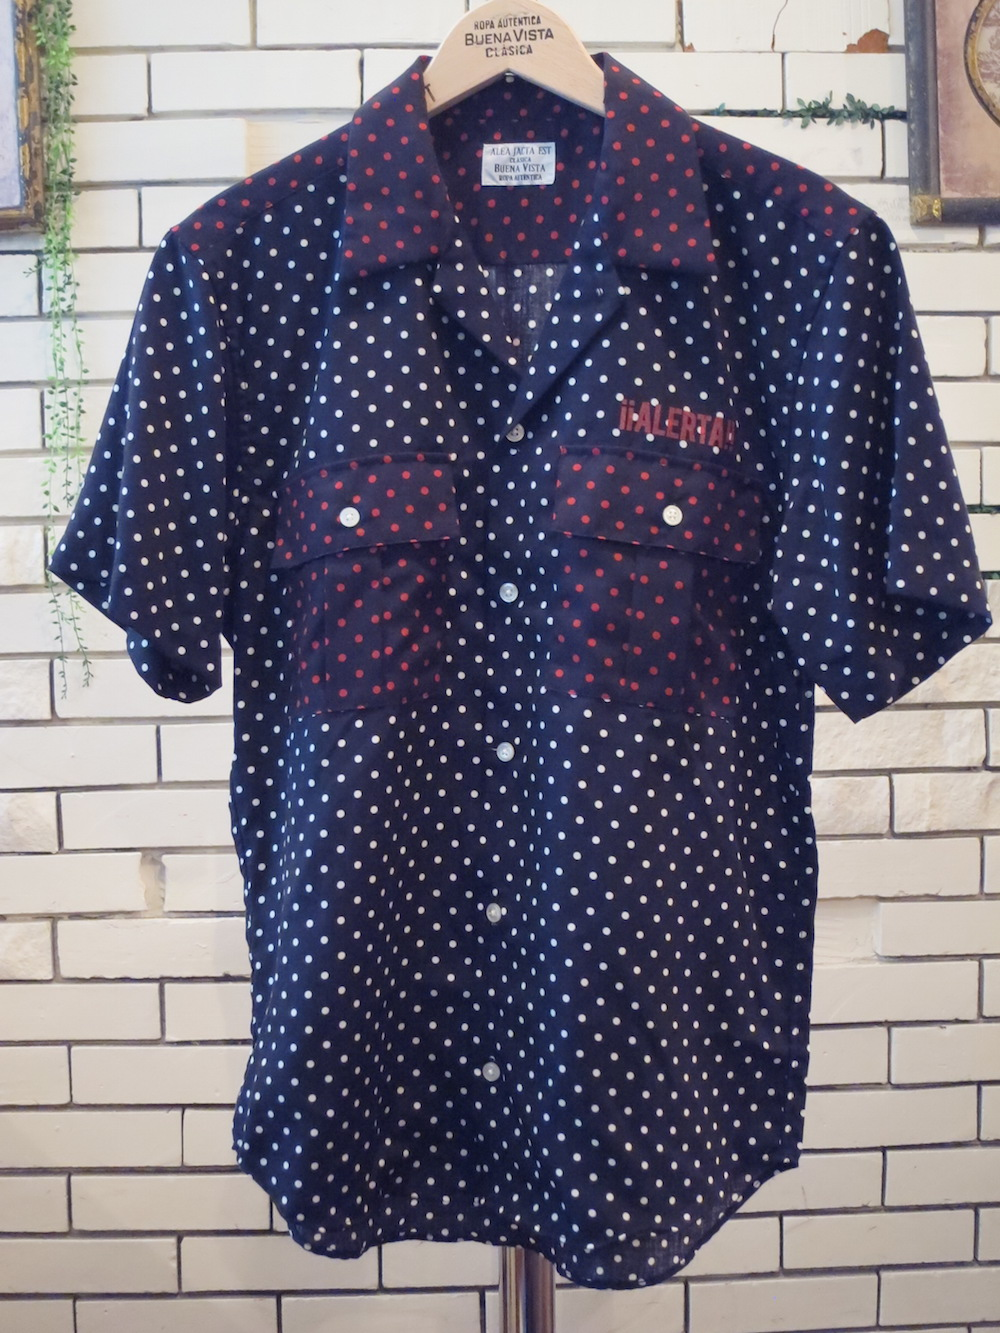 【BUENA VISTA】DOTS shirt